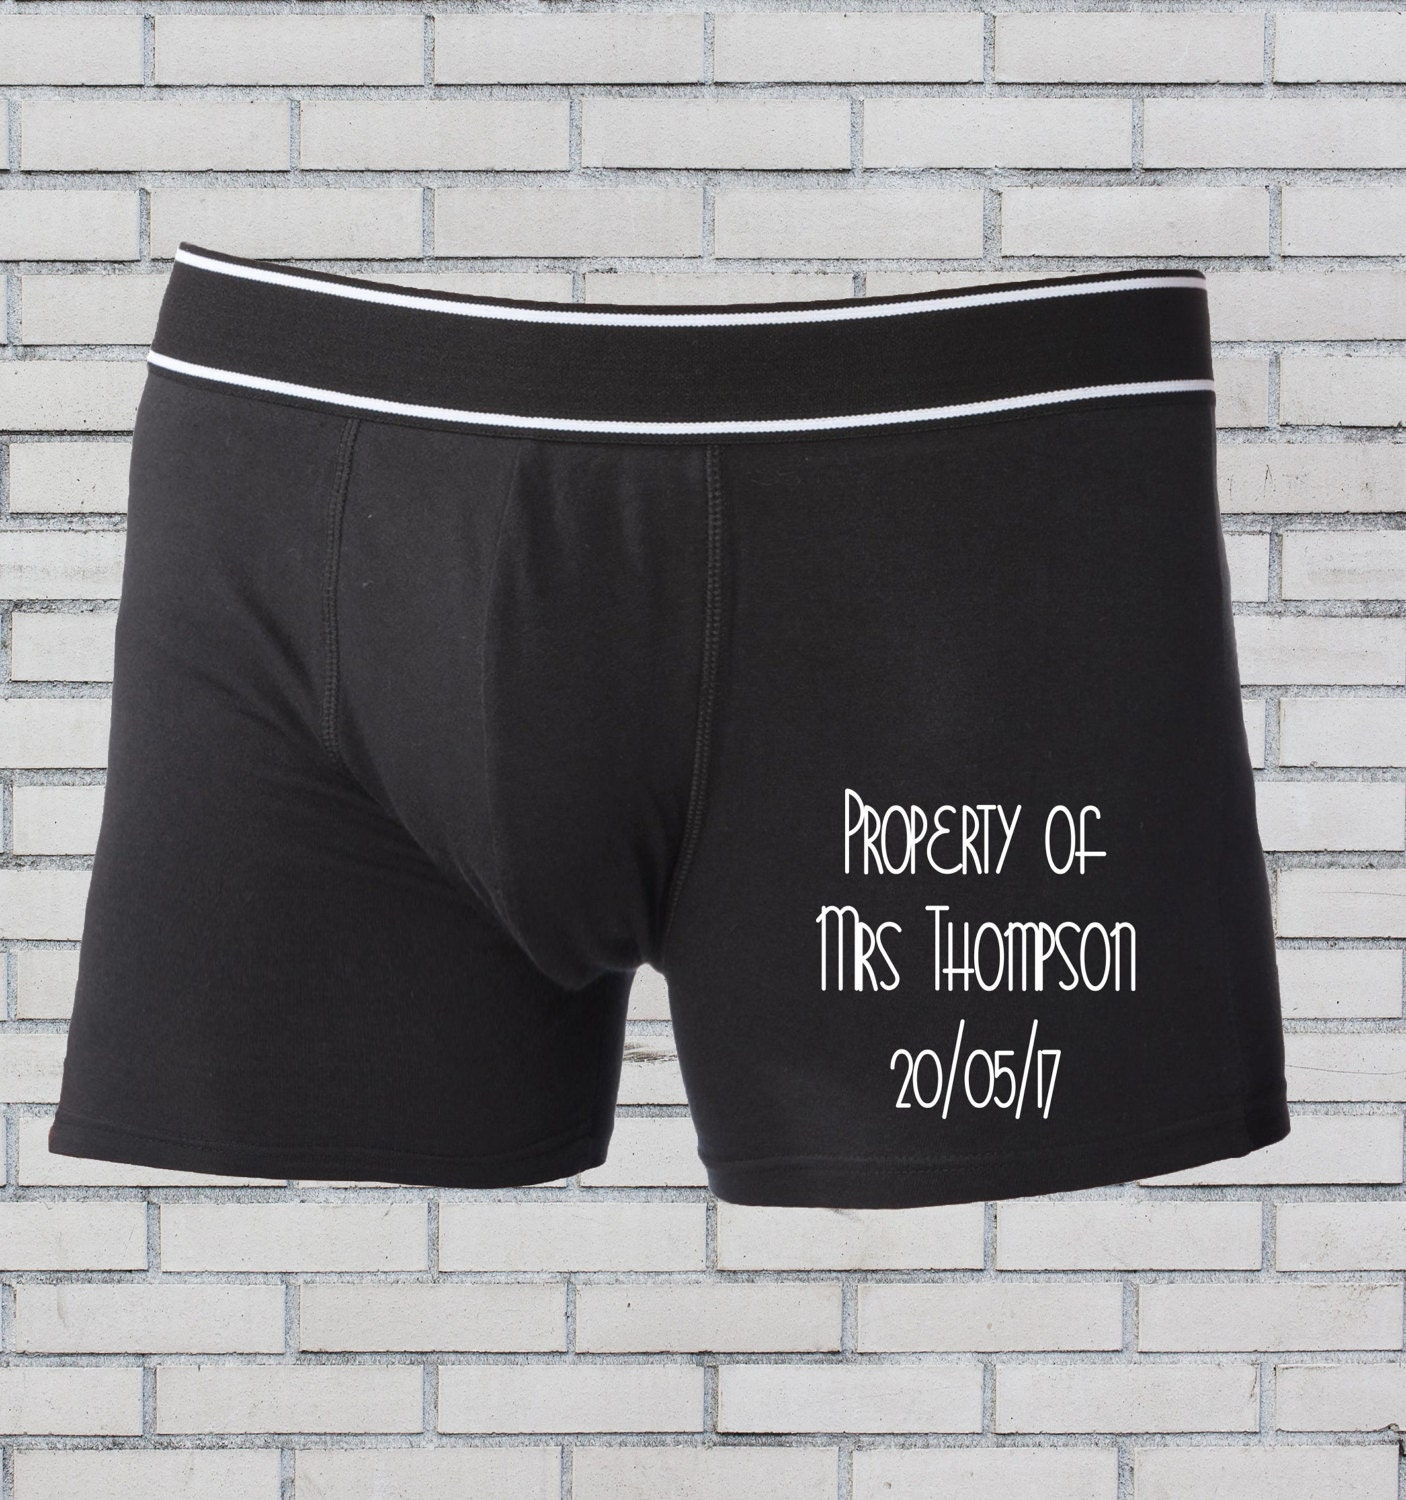 Groom boxers Personalised boxers Groom underwear Wedding boxers Personalised underwear Groomsmen boxer shorts Property of Mrs